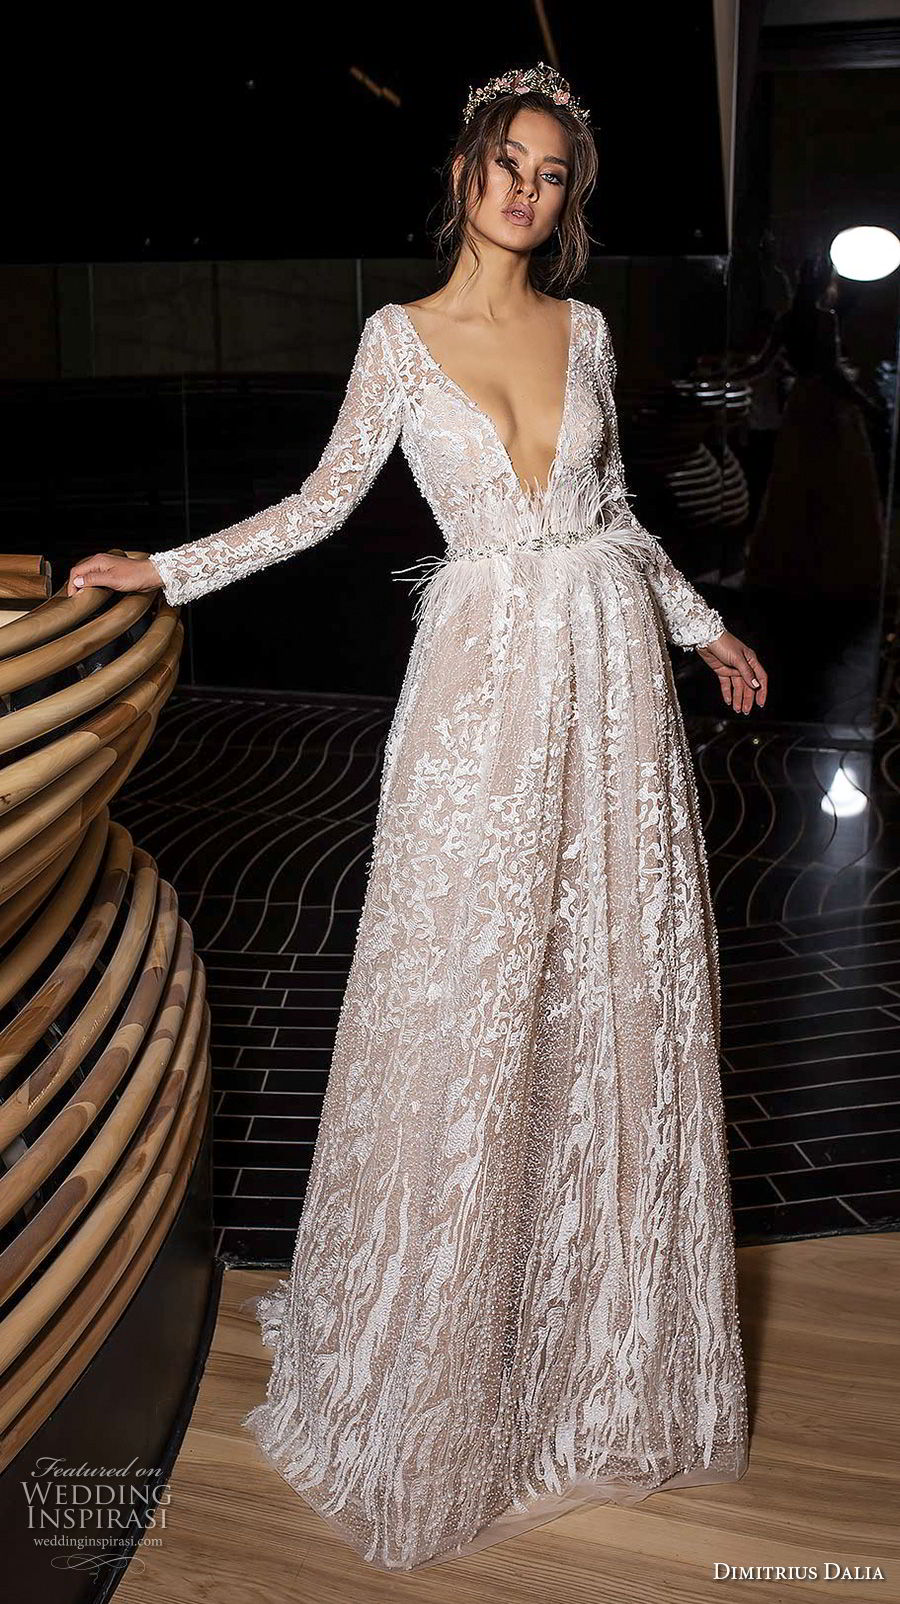 dimitrius dalia 2018 royal long sleeves deep v neck full embellishment sexy glamorous a line wedding dress low open back (2) mv